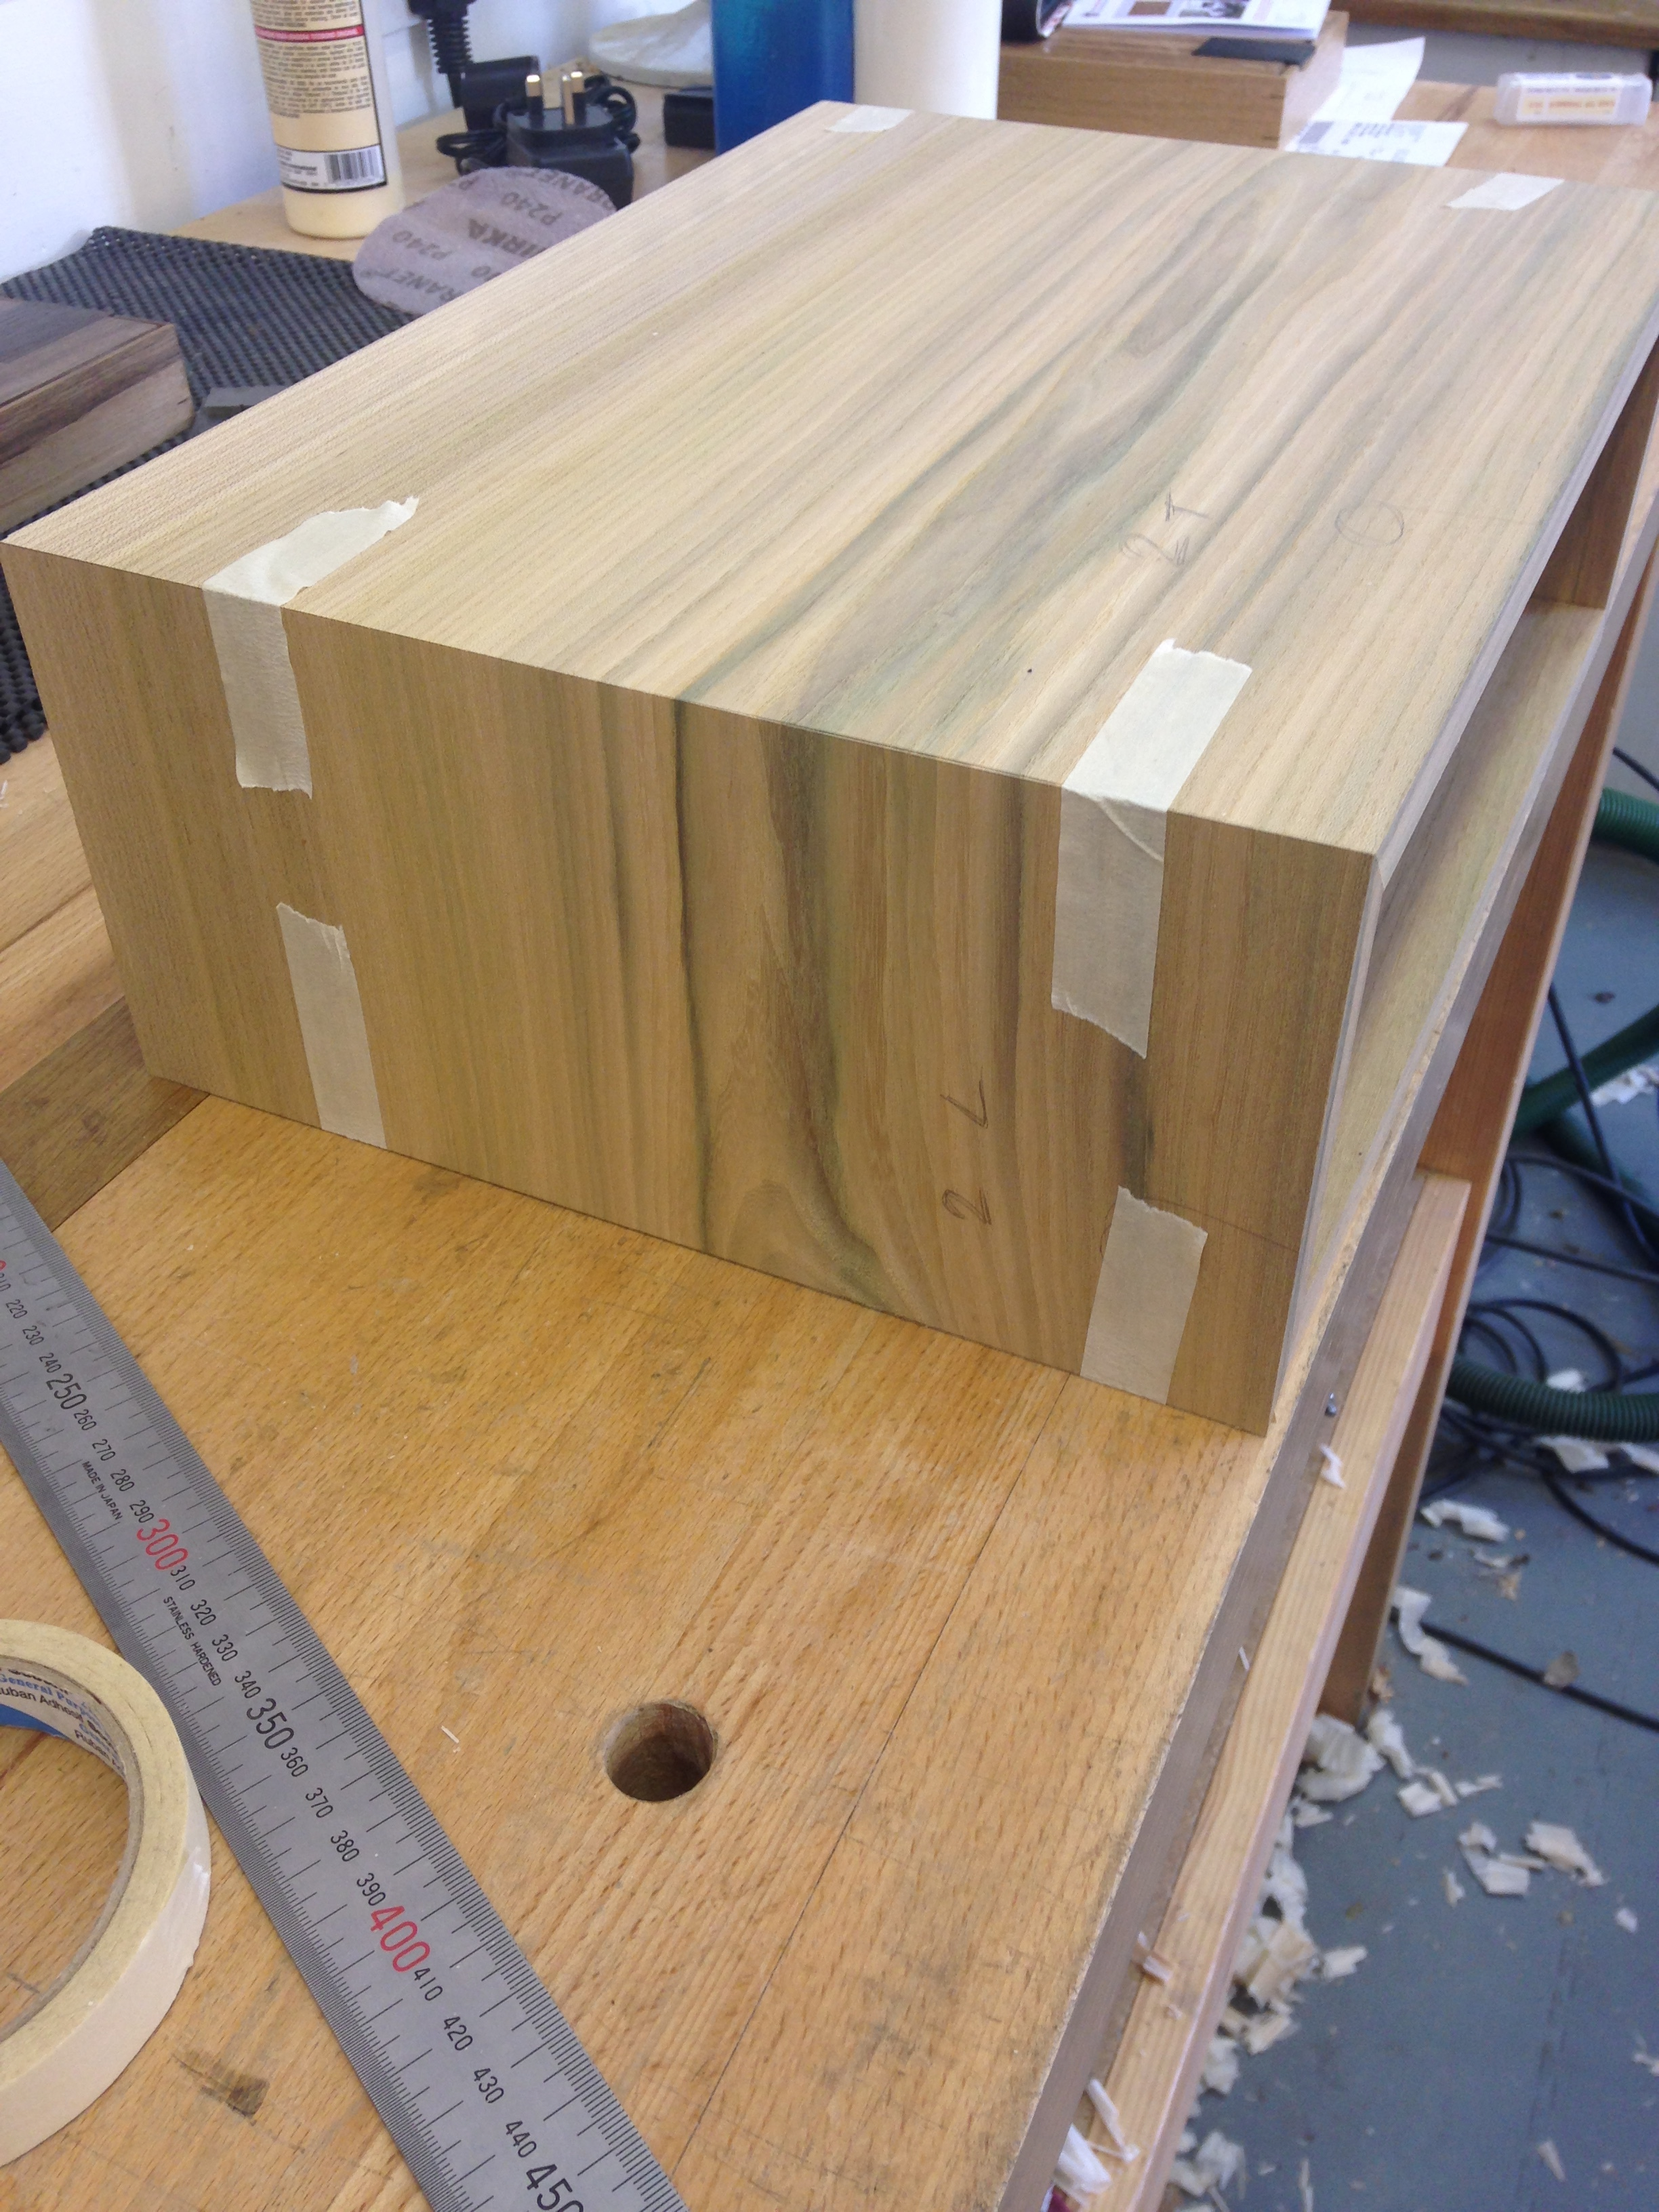 Elm is machined to 17mm thickness and mitred